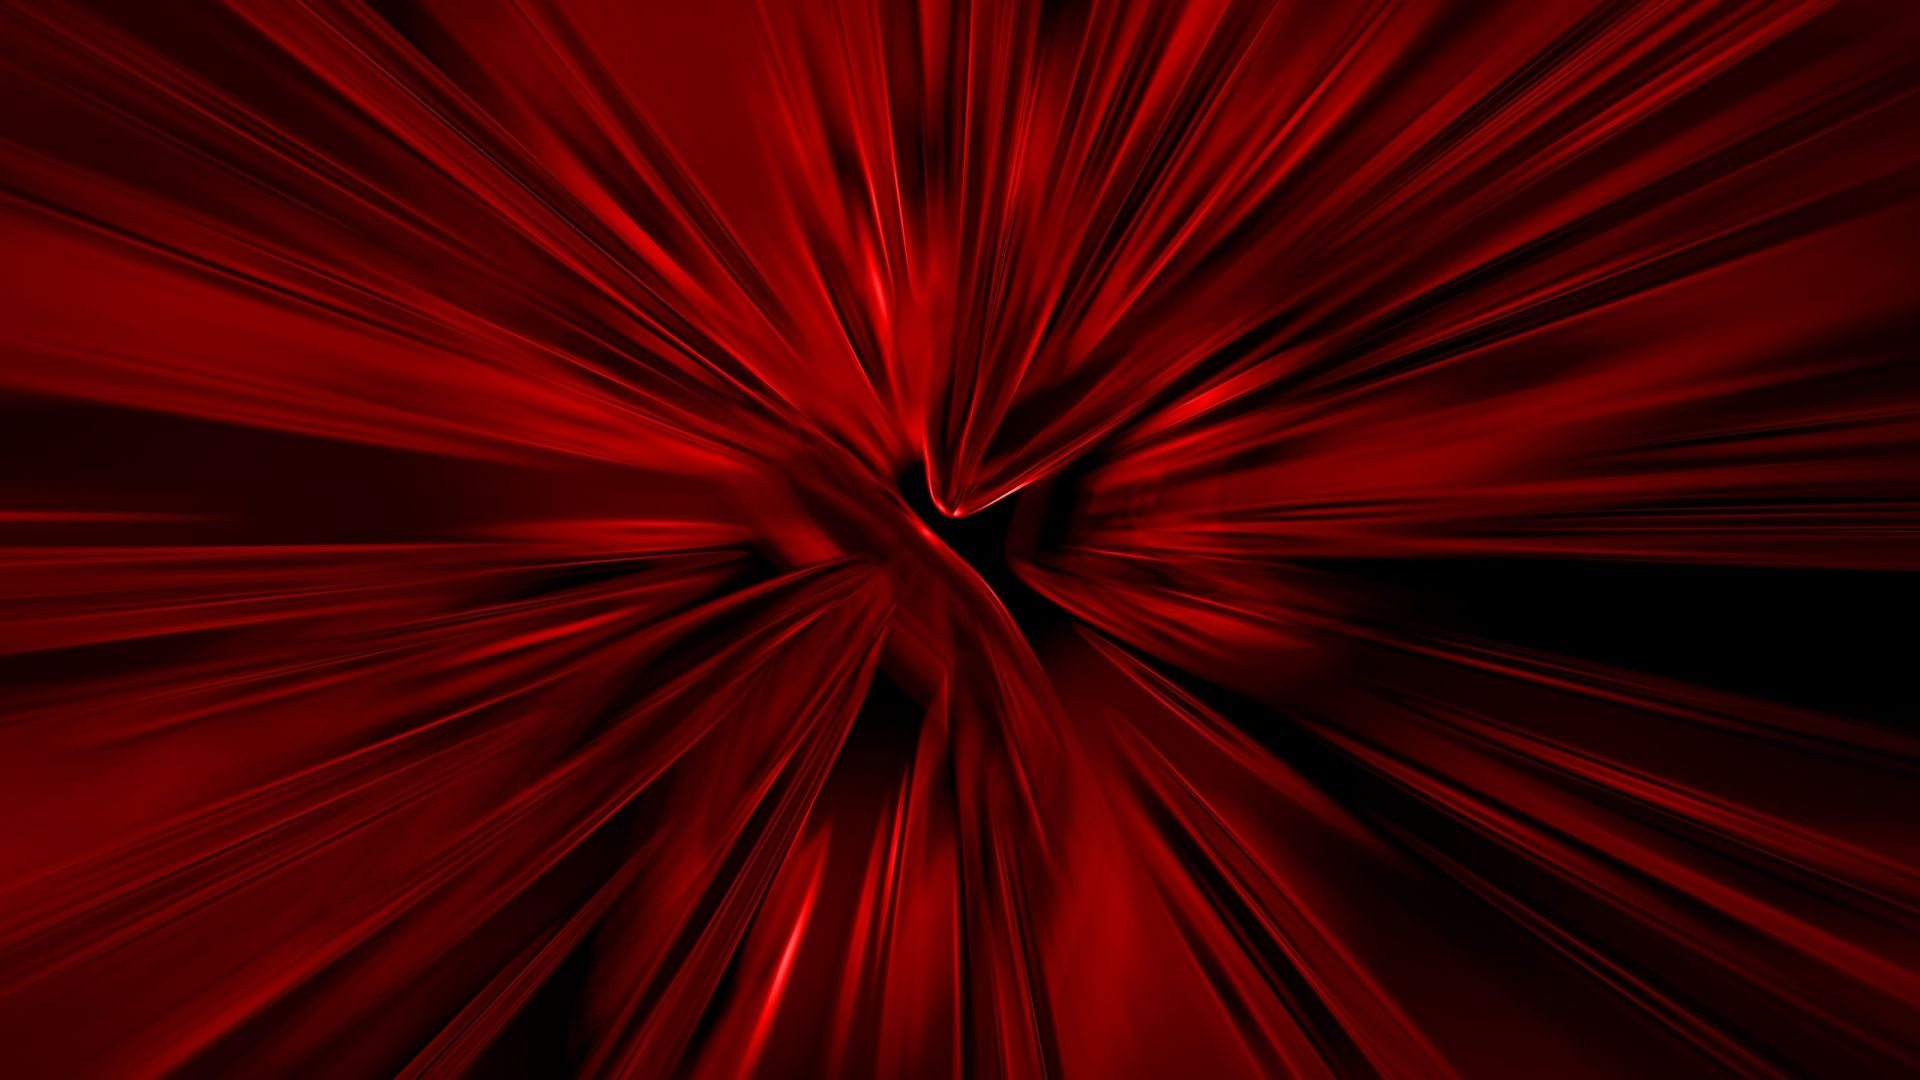 Black And Red hd wallpaper for laptop